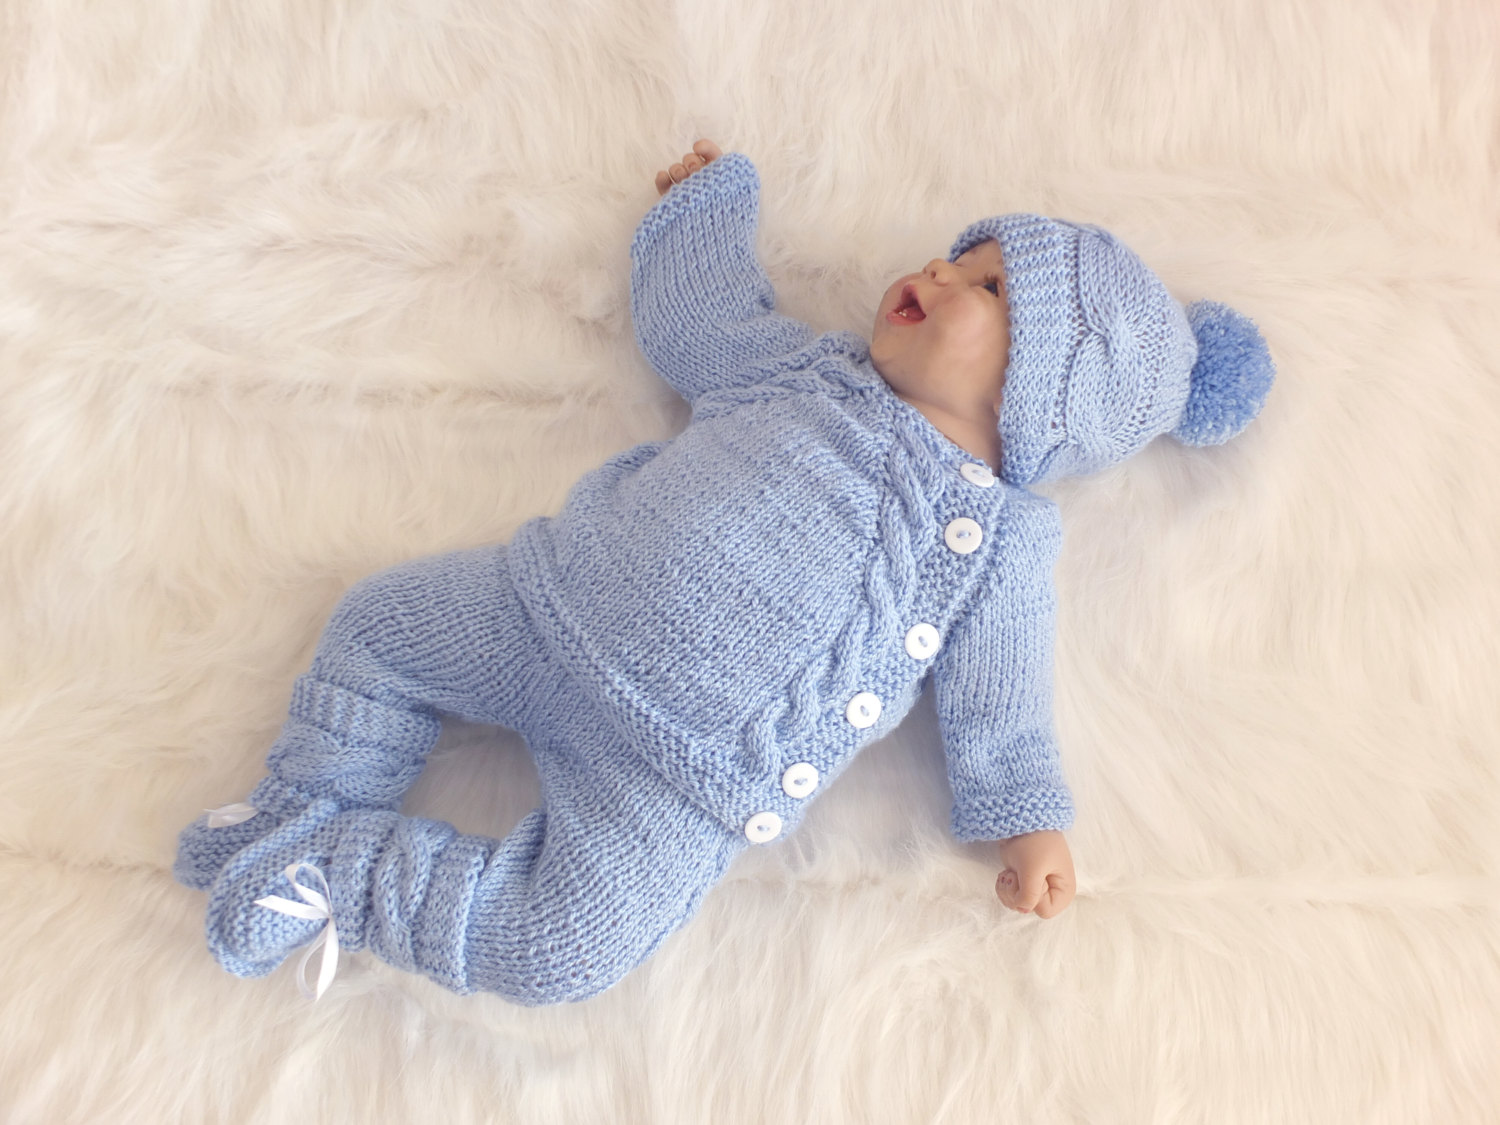 knitted baby clothes handmade by inese NGKGQAR